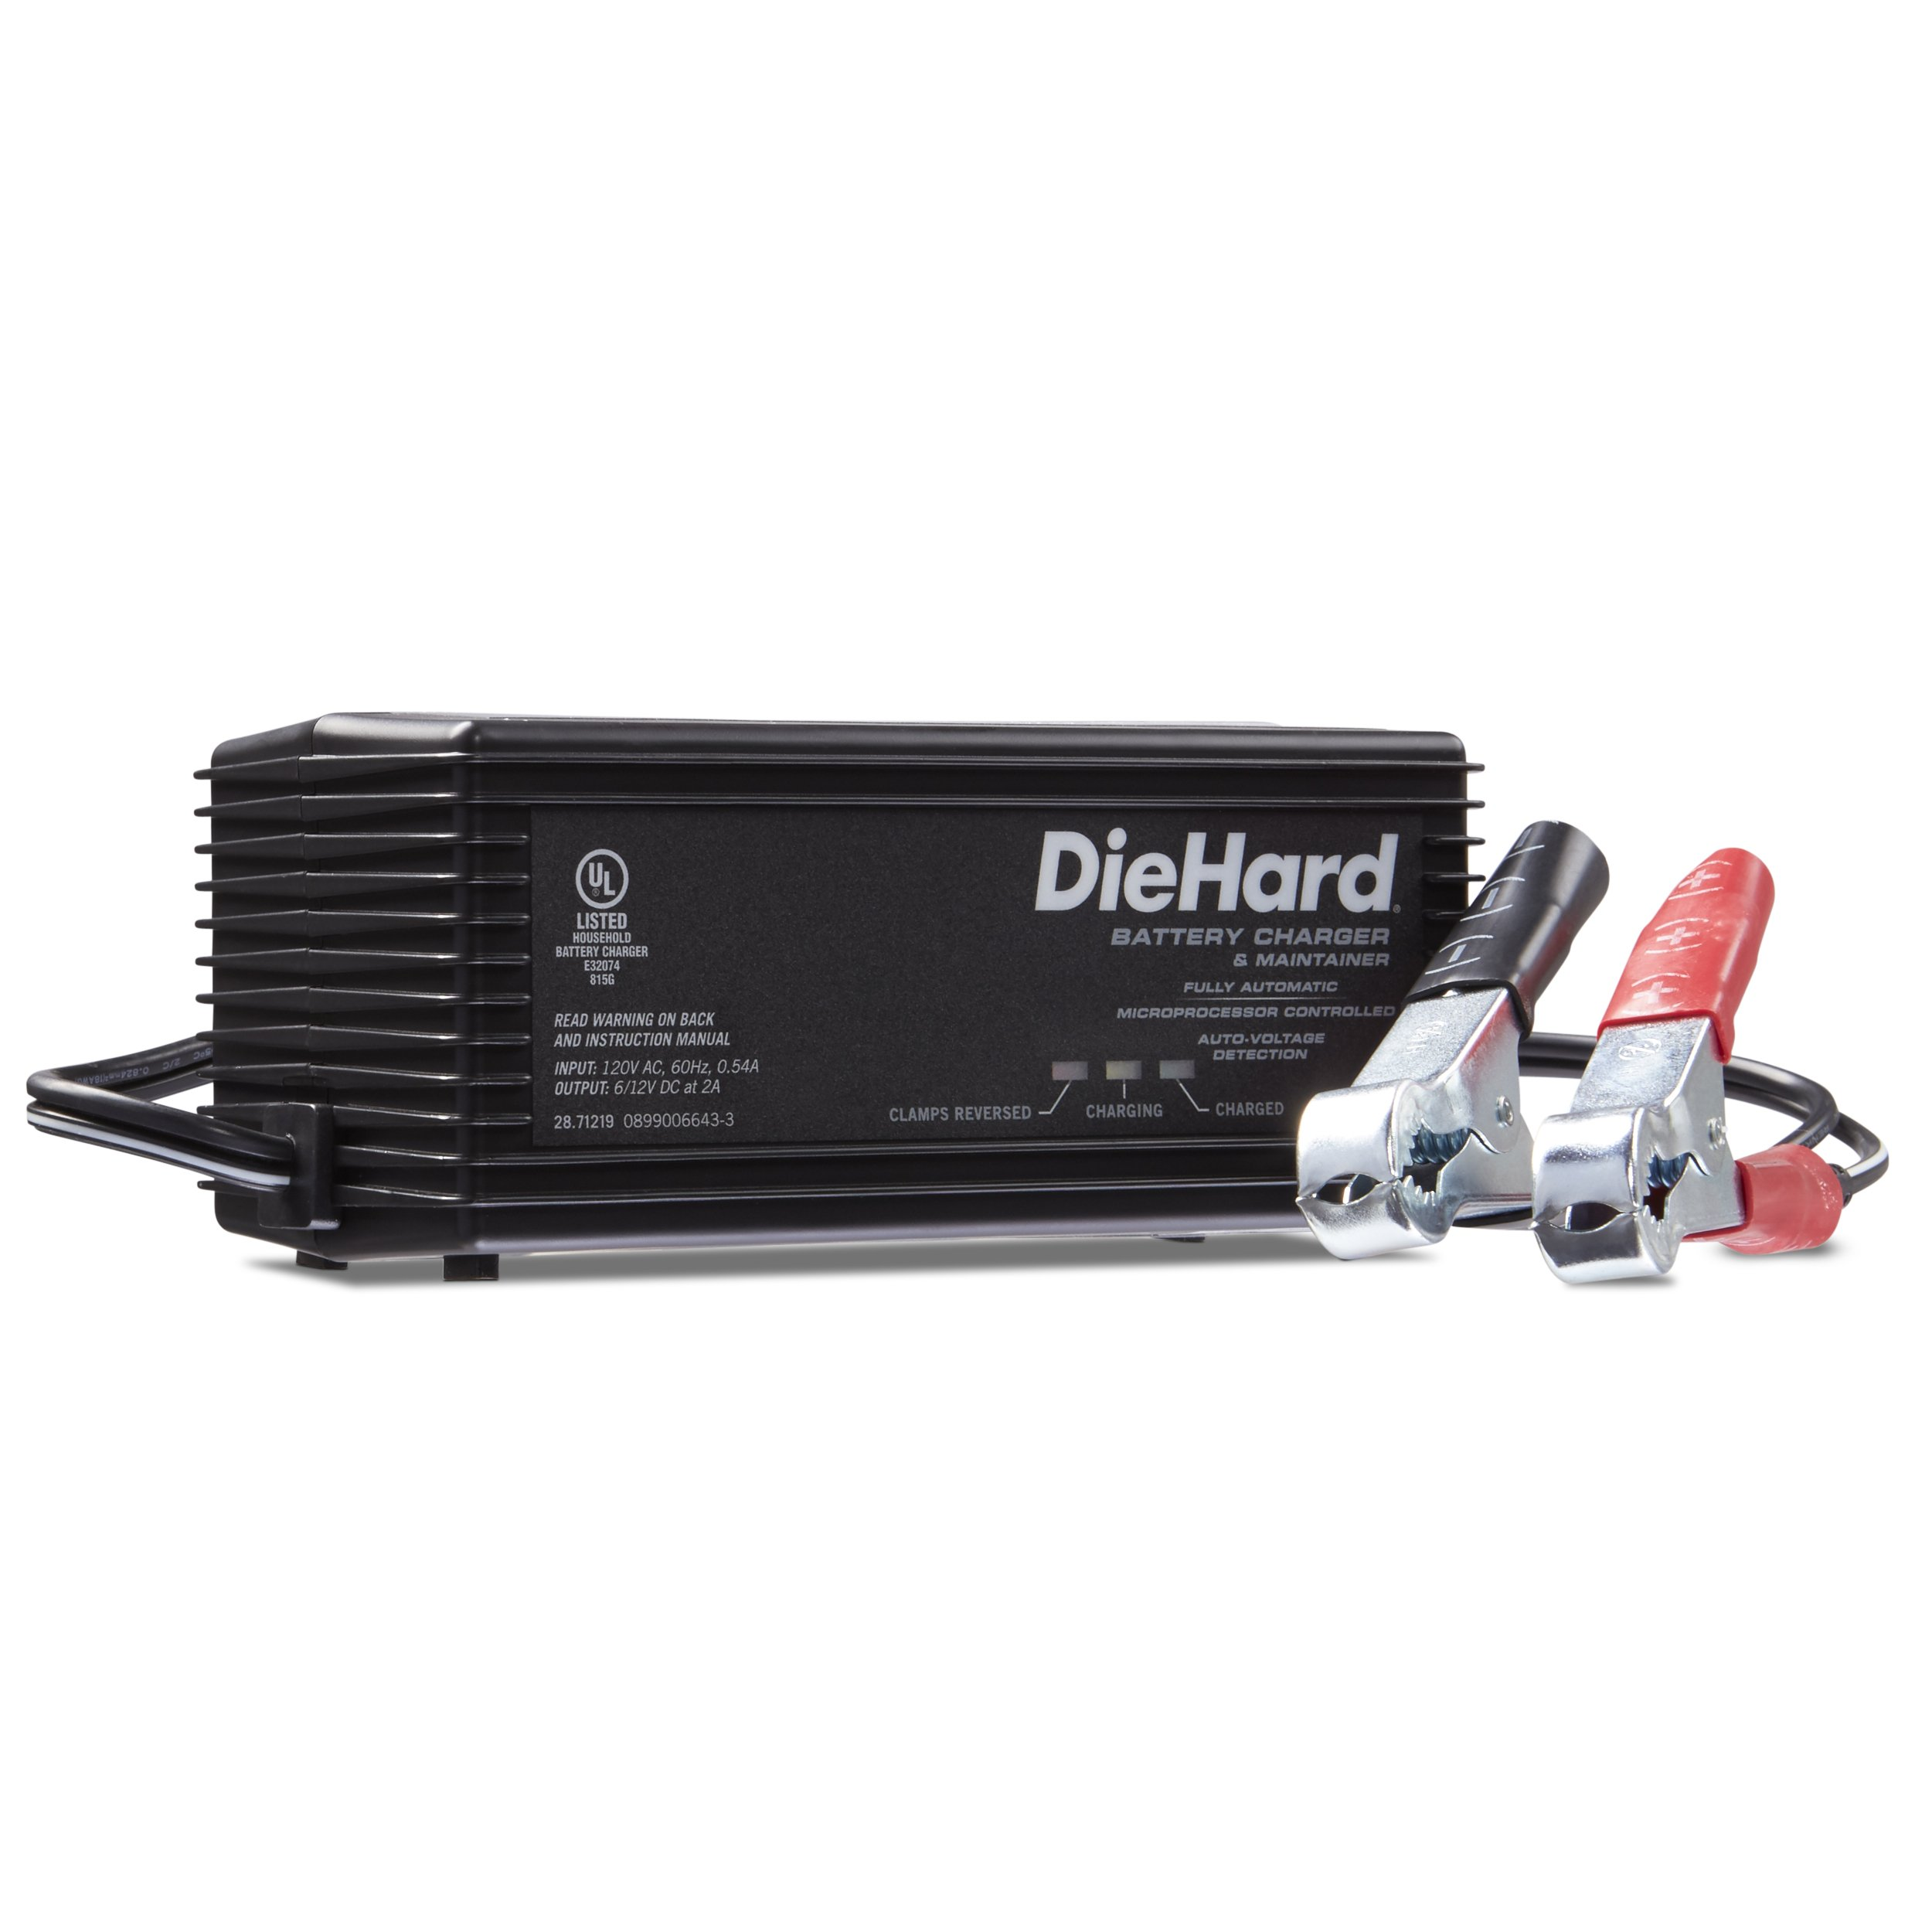 DieHard 71219 Shelf Smart Battery Charger & Maintainer (6/12 Volt 2 Amp)